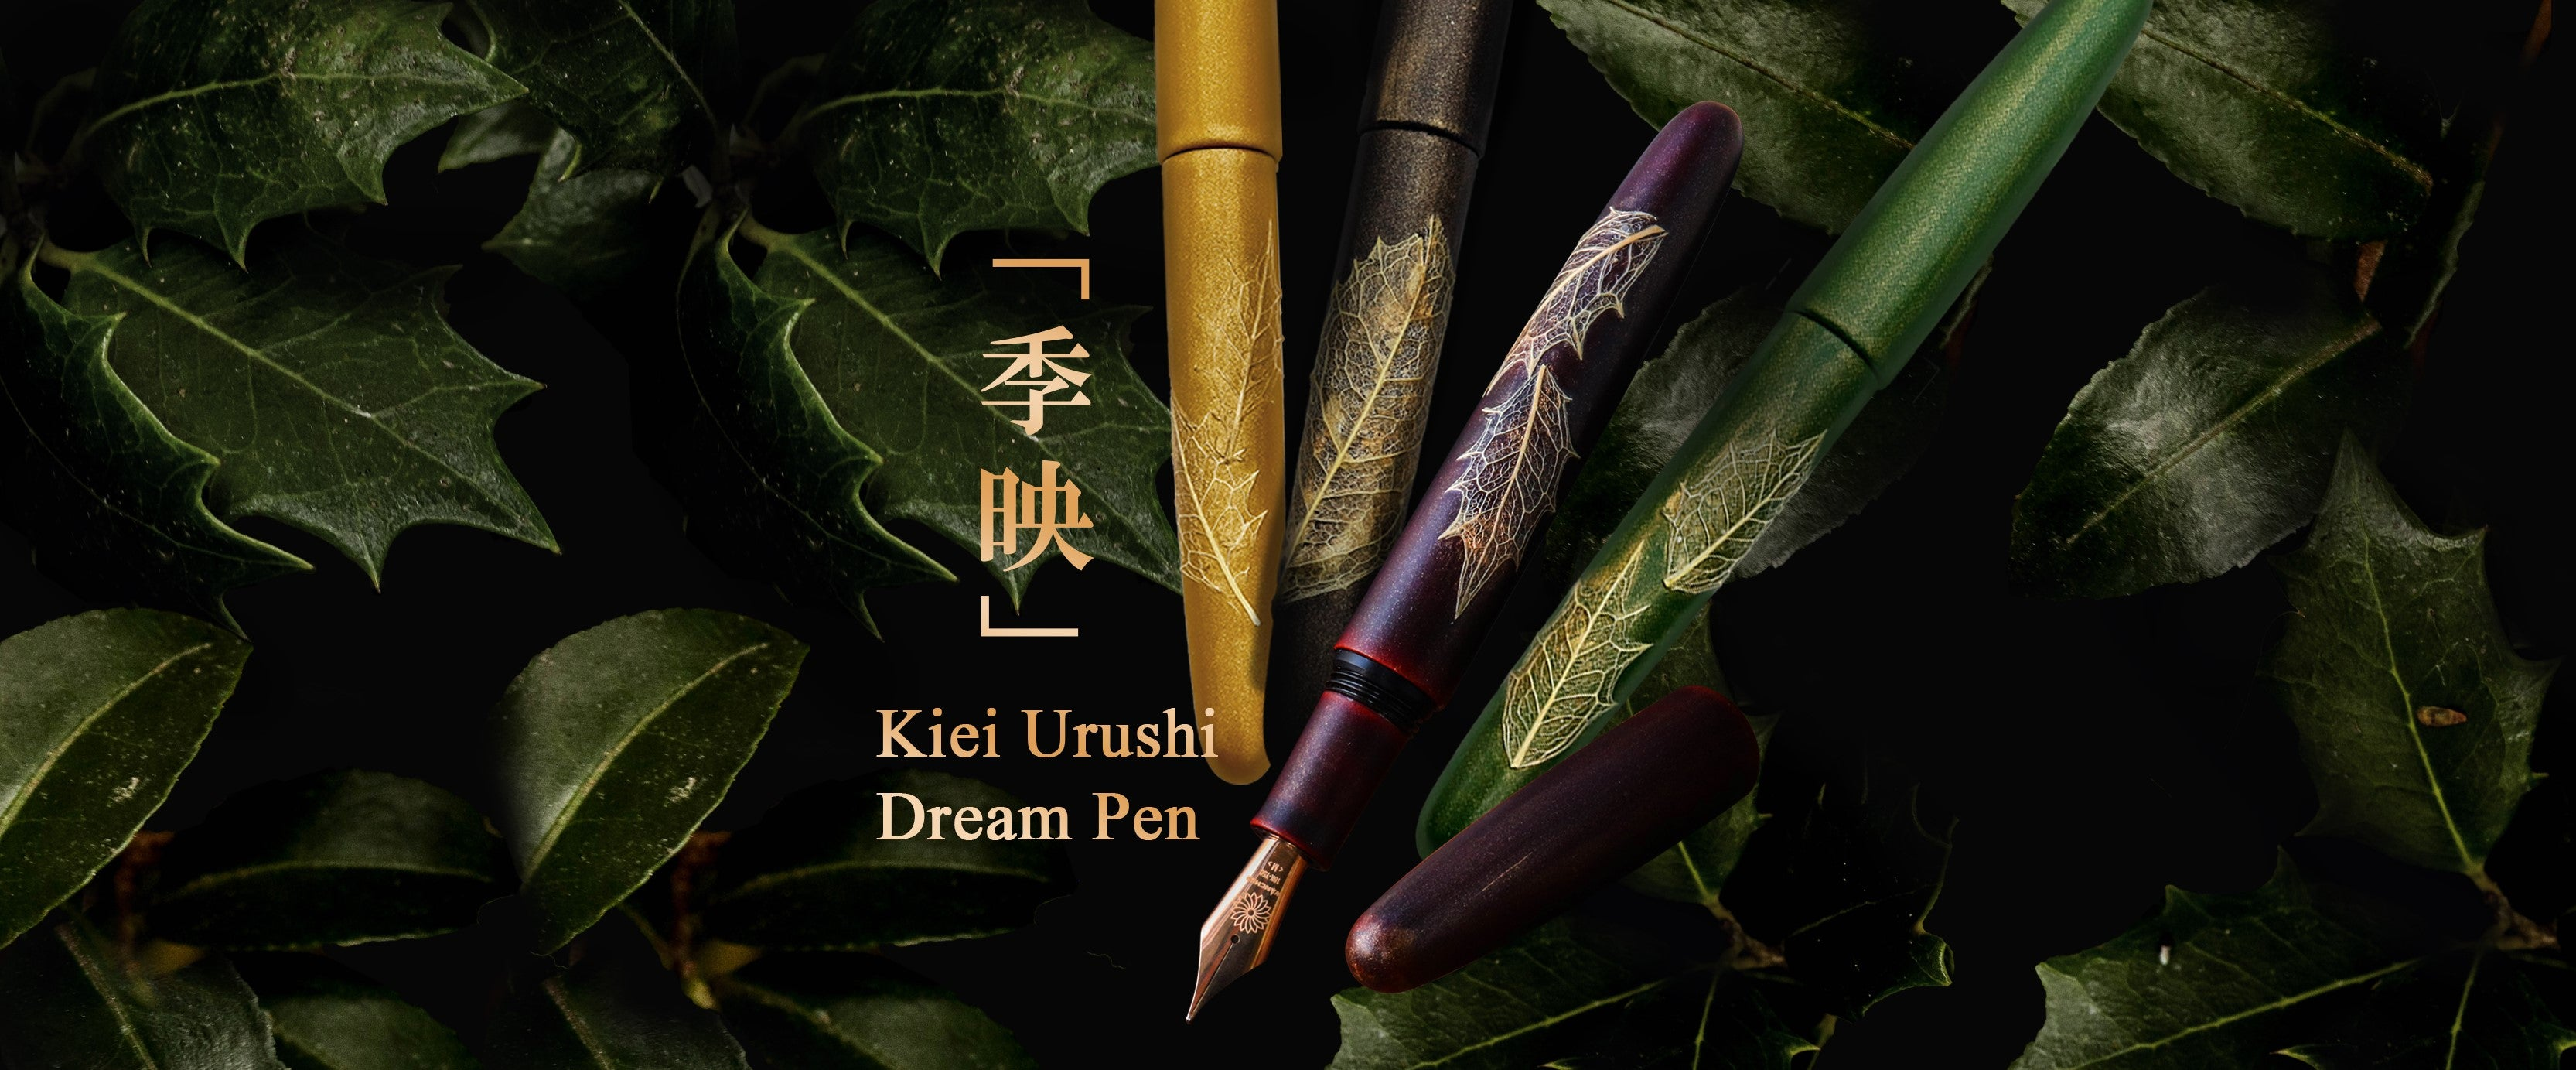 Kiei Urushi Collection